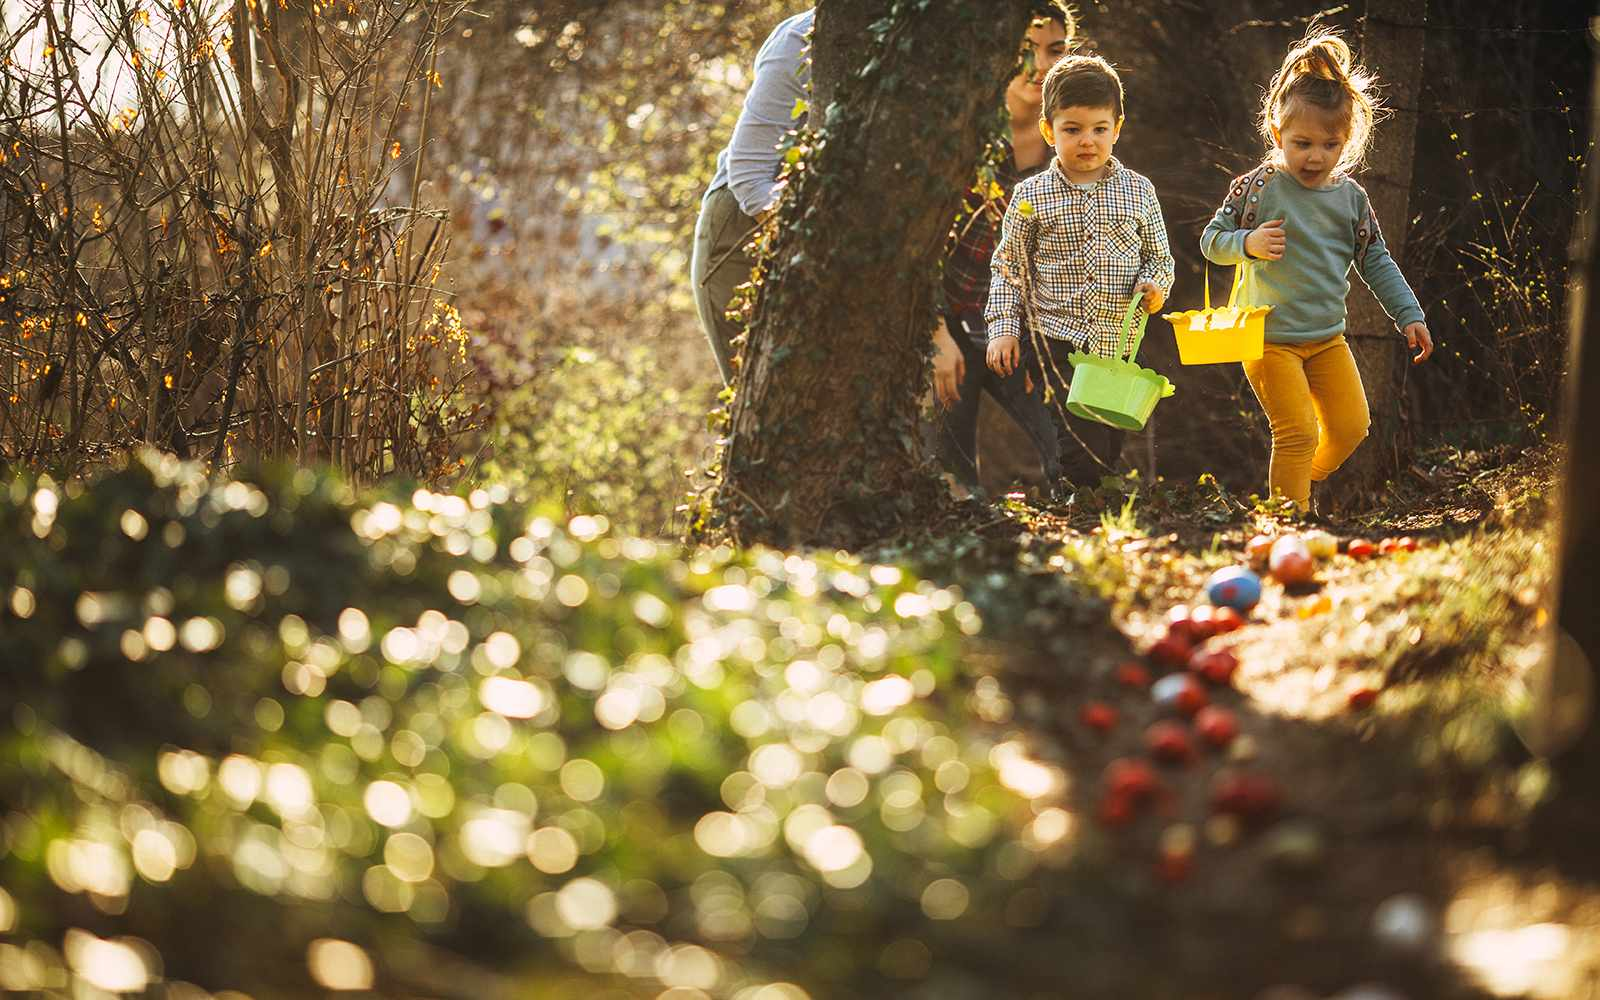 Cute little kids and their moms during Easter egg hunt